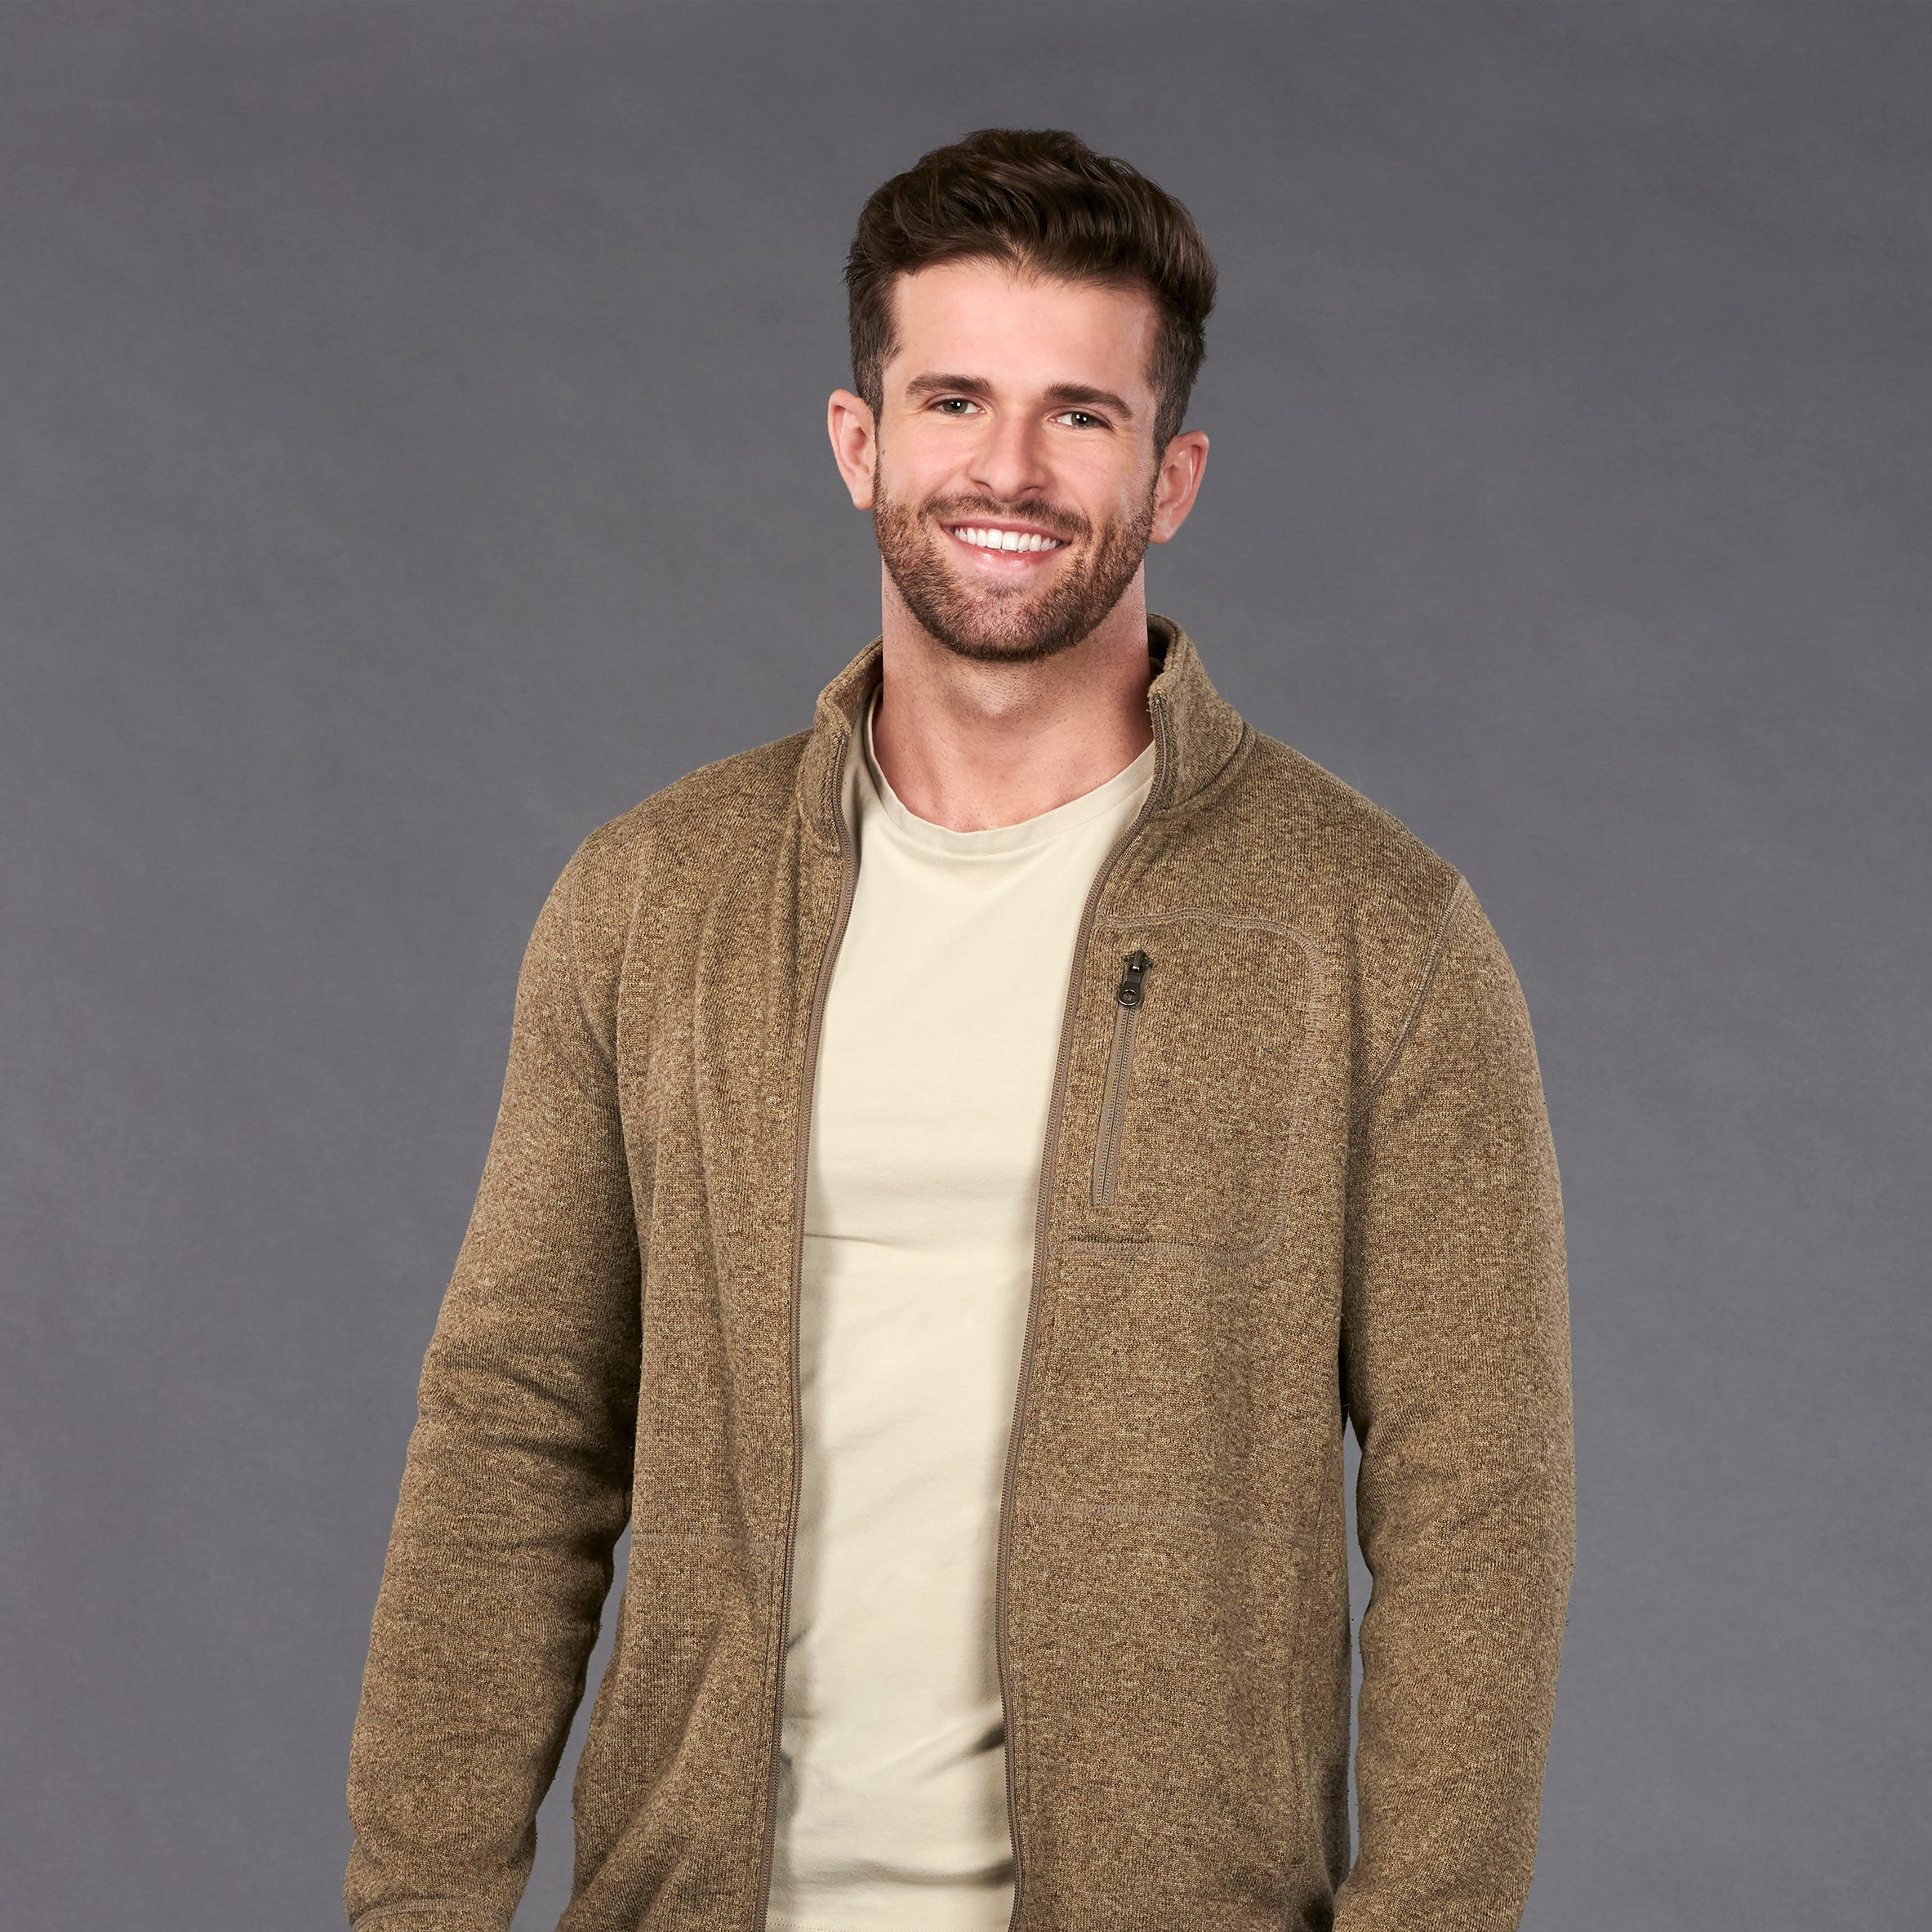 Meet Knoxville 'The Bachelorette' contestant Jed Wyatt: 5 things to know